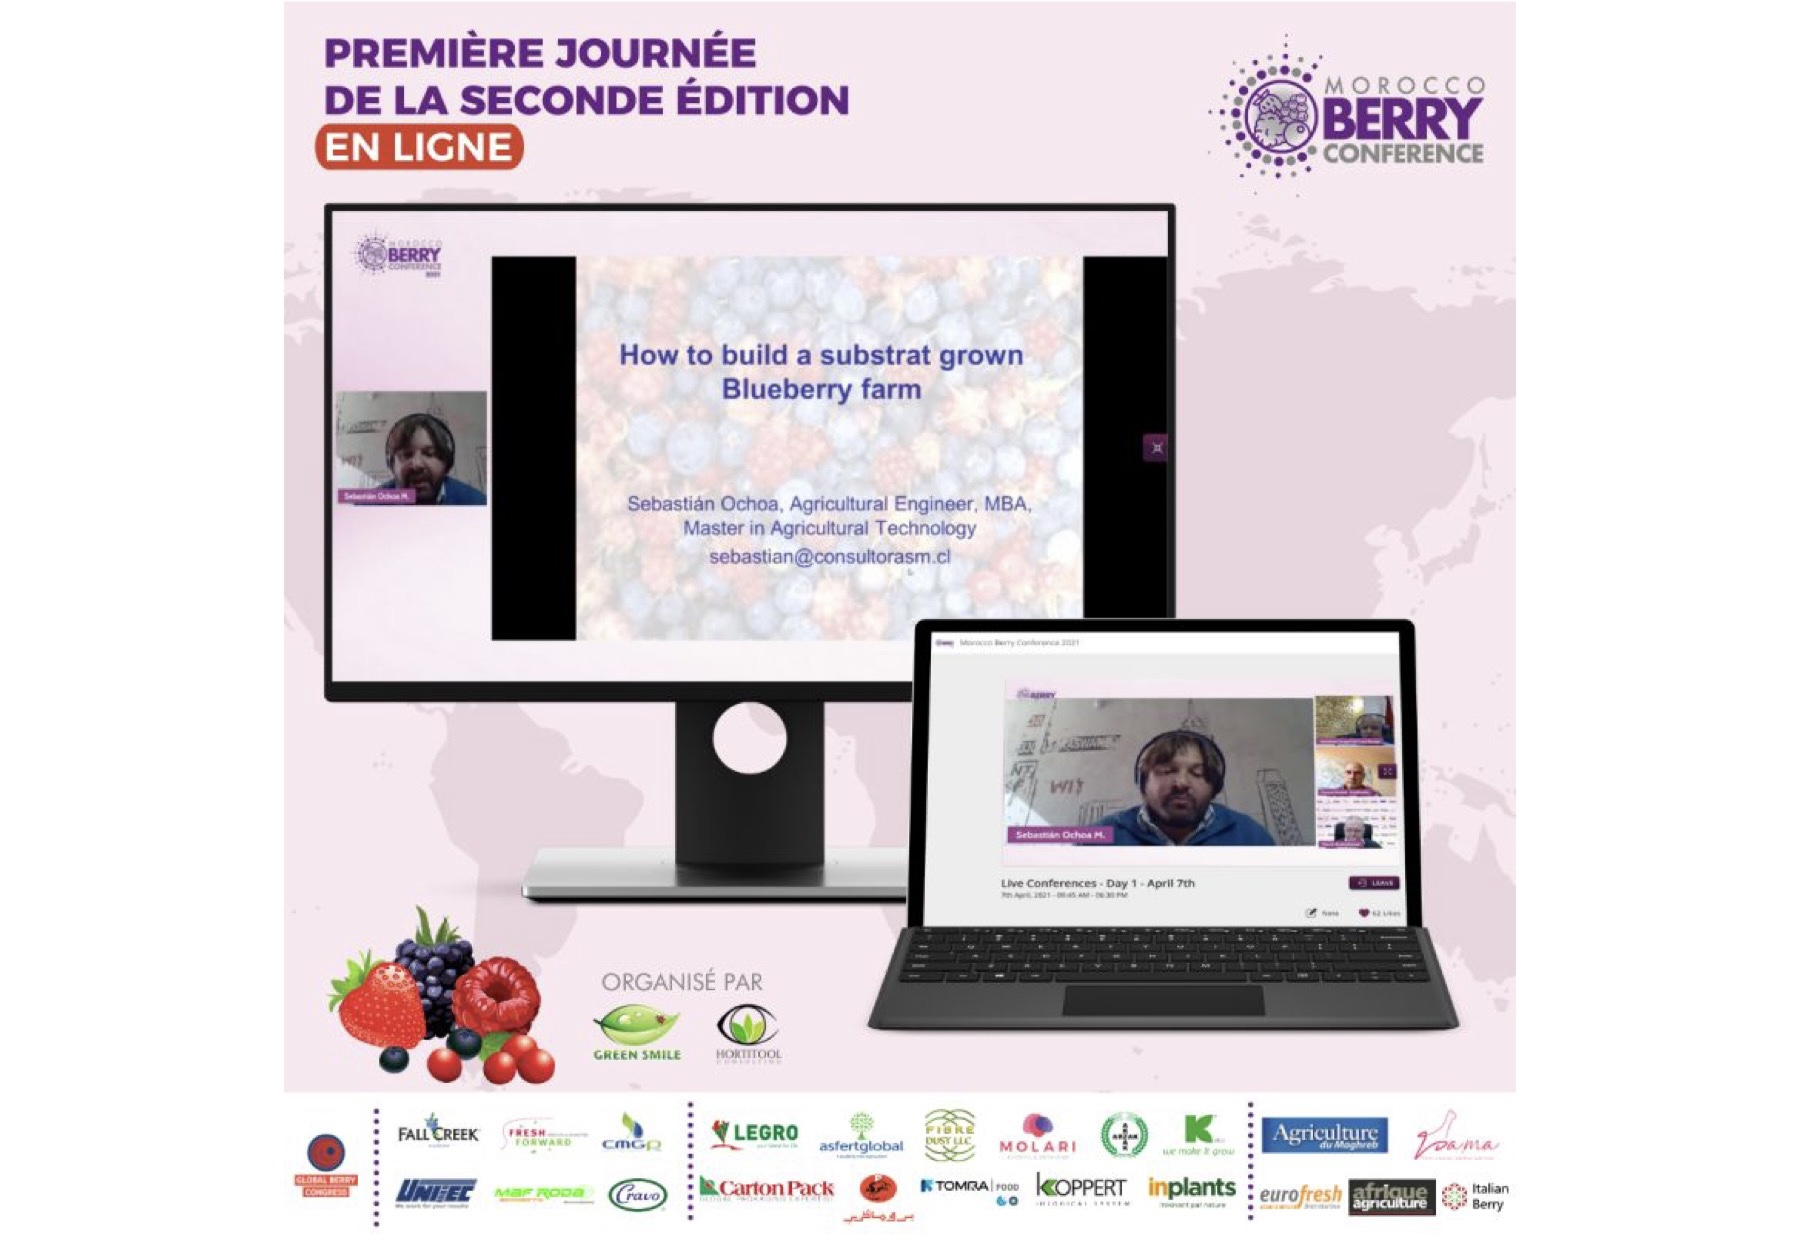 Morocco Berry Conference did run online on 7th and 8th April 2021